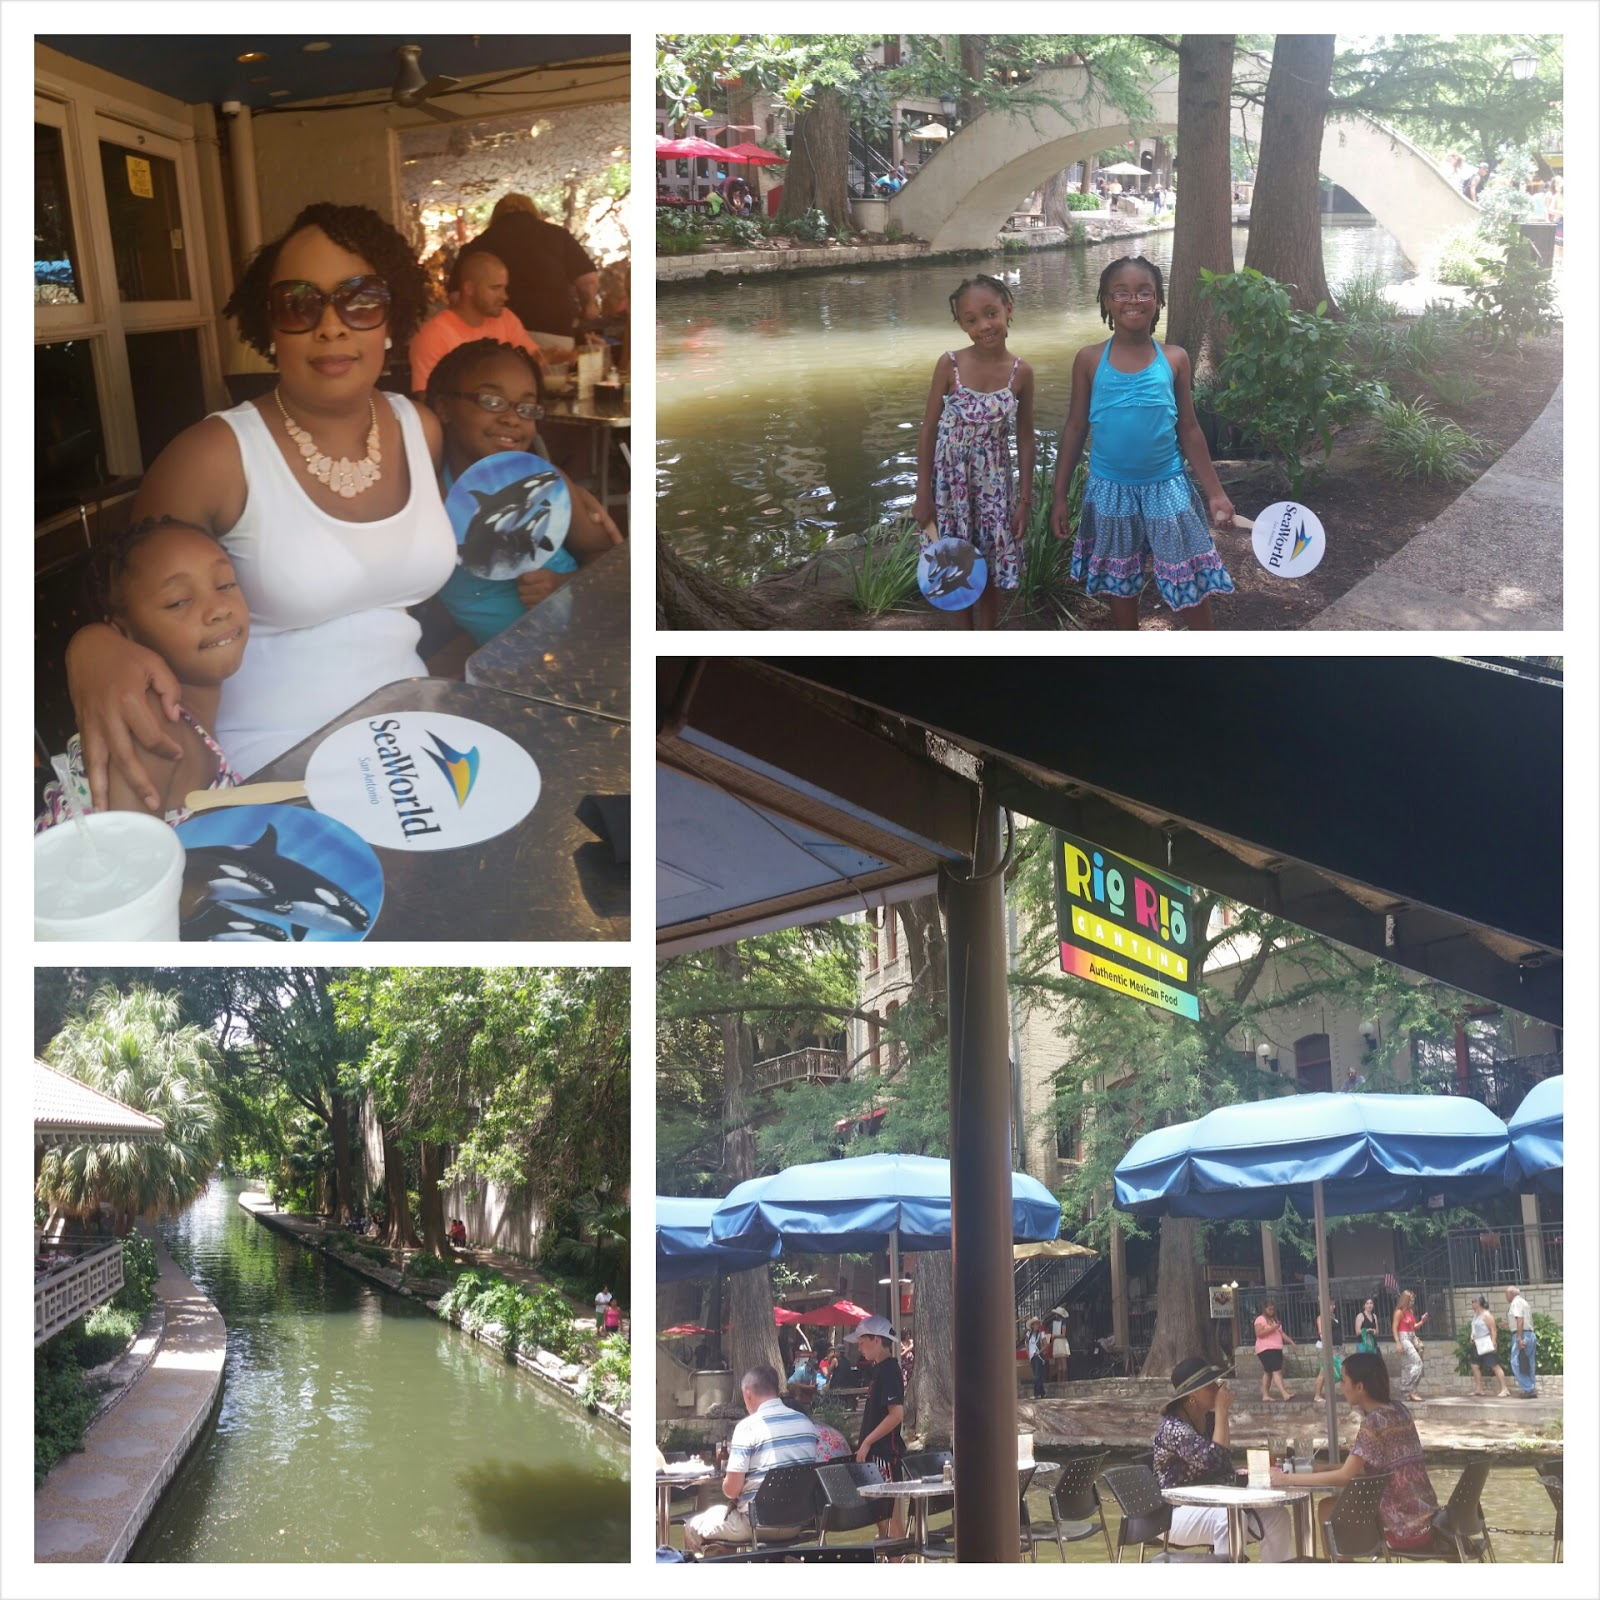 My Epic Family Road Trip Vacation! #RoadTrip #Riverwalk via ProductReviewMom.com